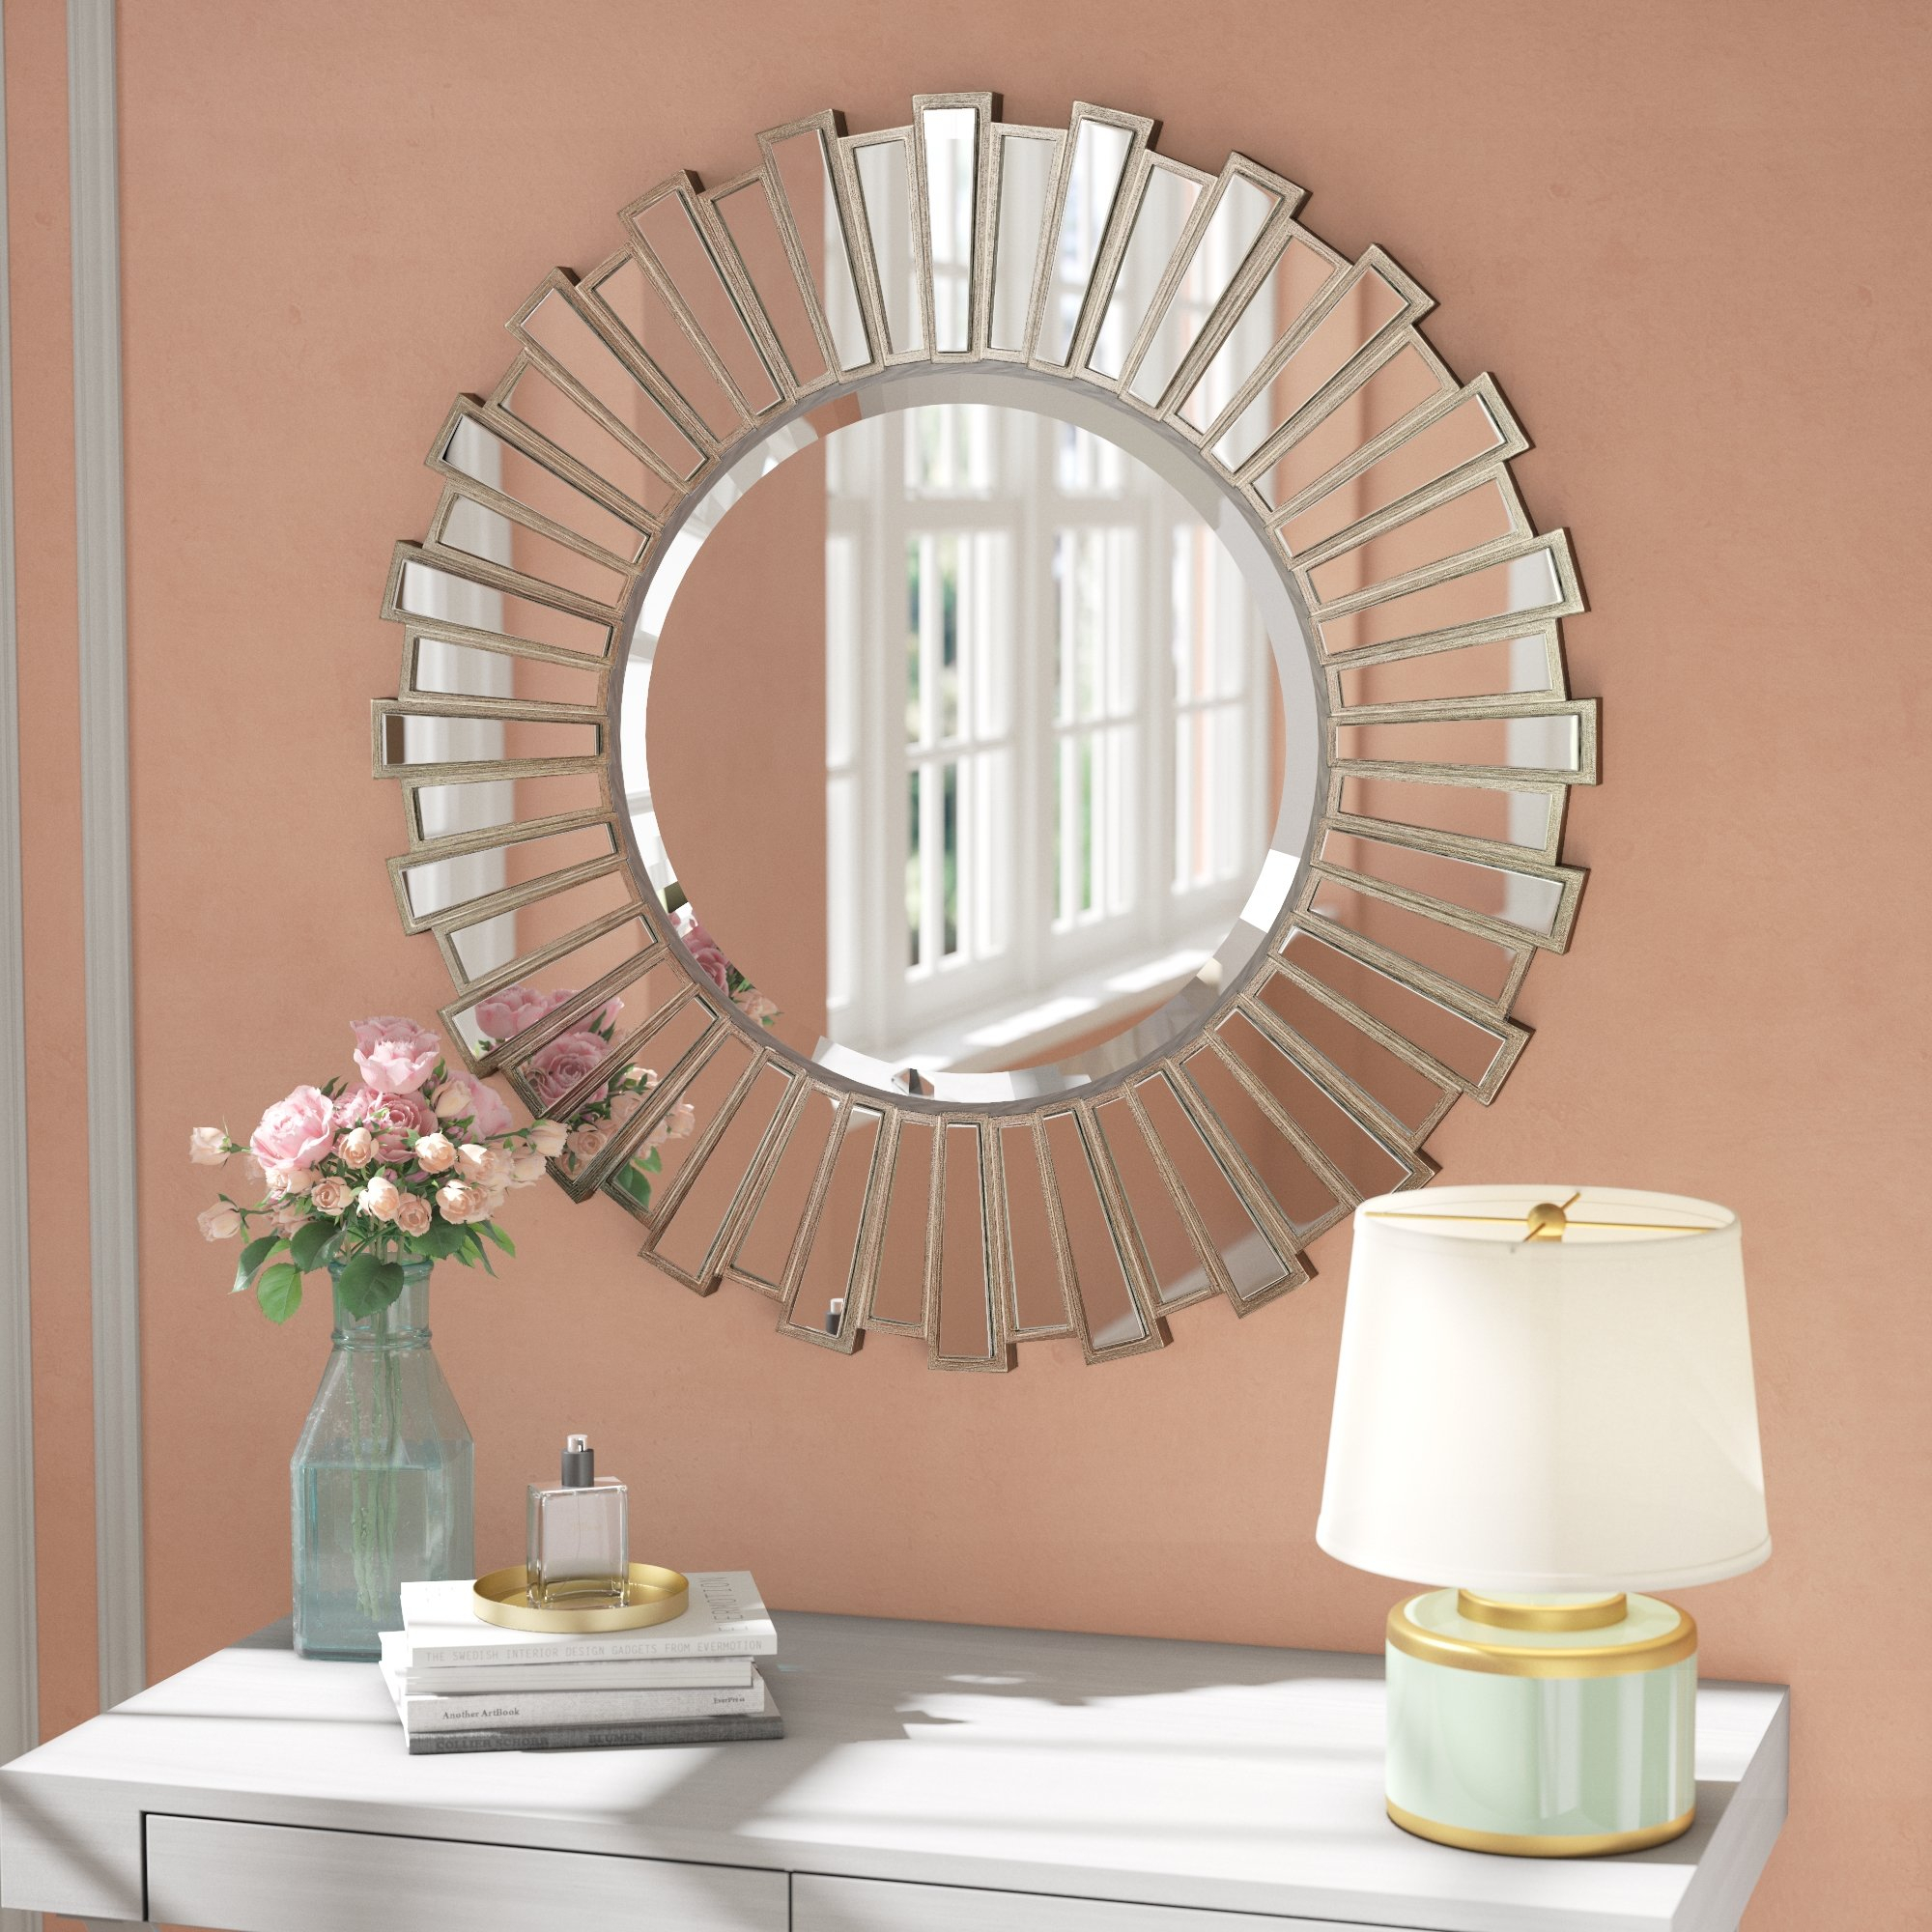 Large & Oversized Sunburst Mirrors You'll Love In 2019 | Wayfair With Brylee Traditional Sunburst Mirrors (View 19 of 20)